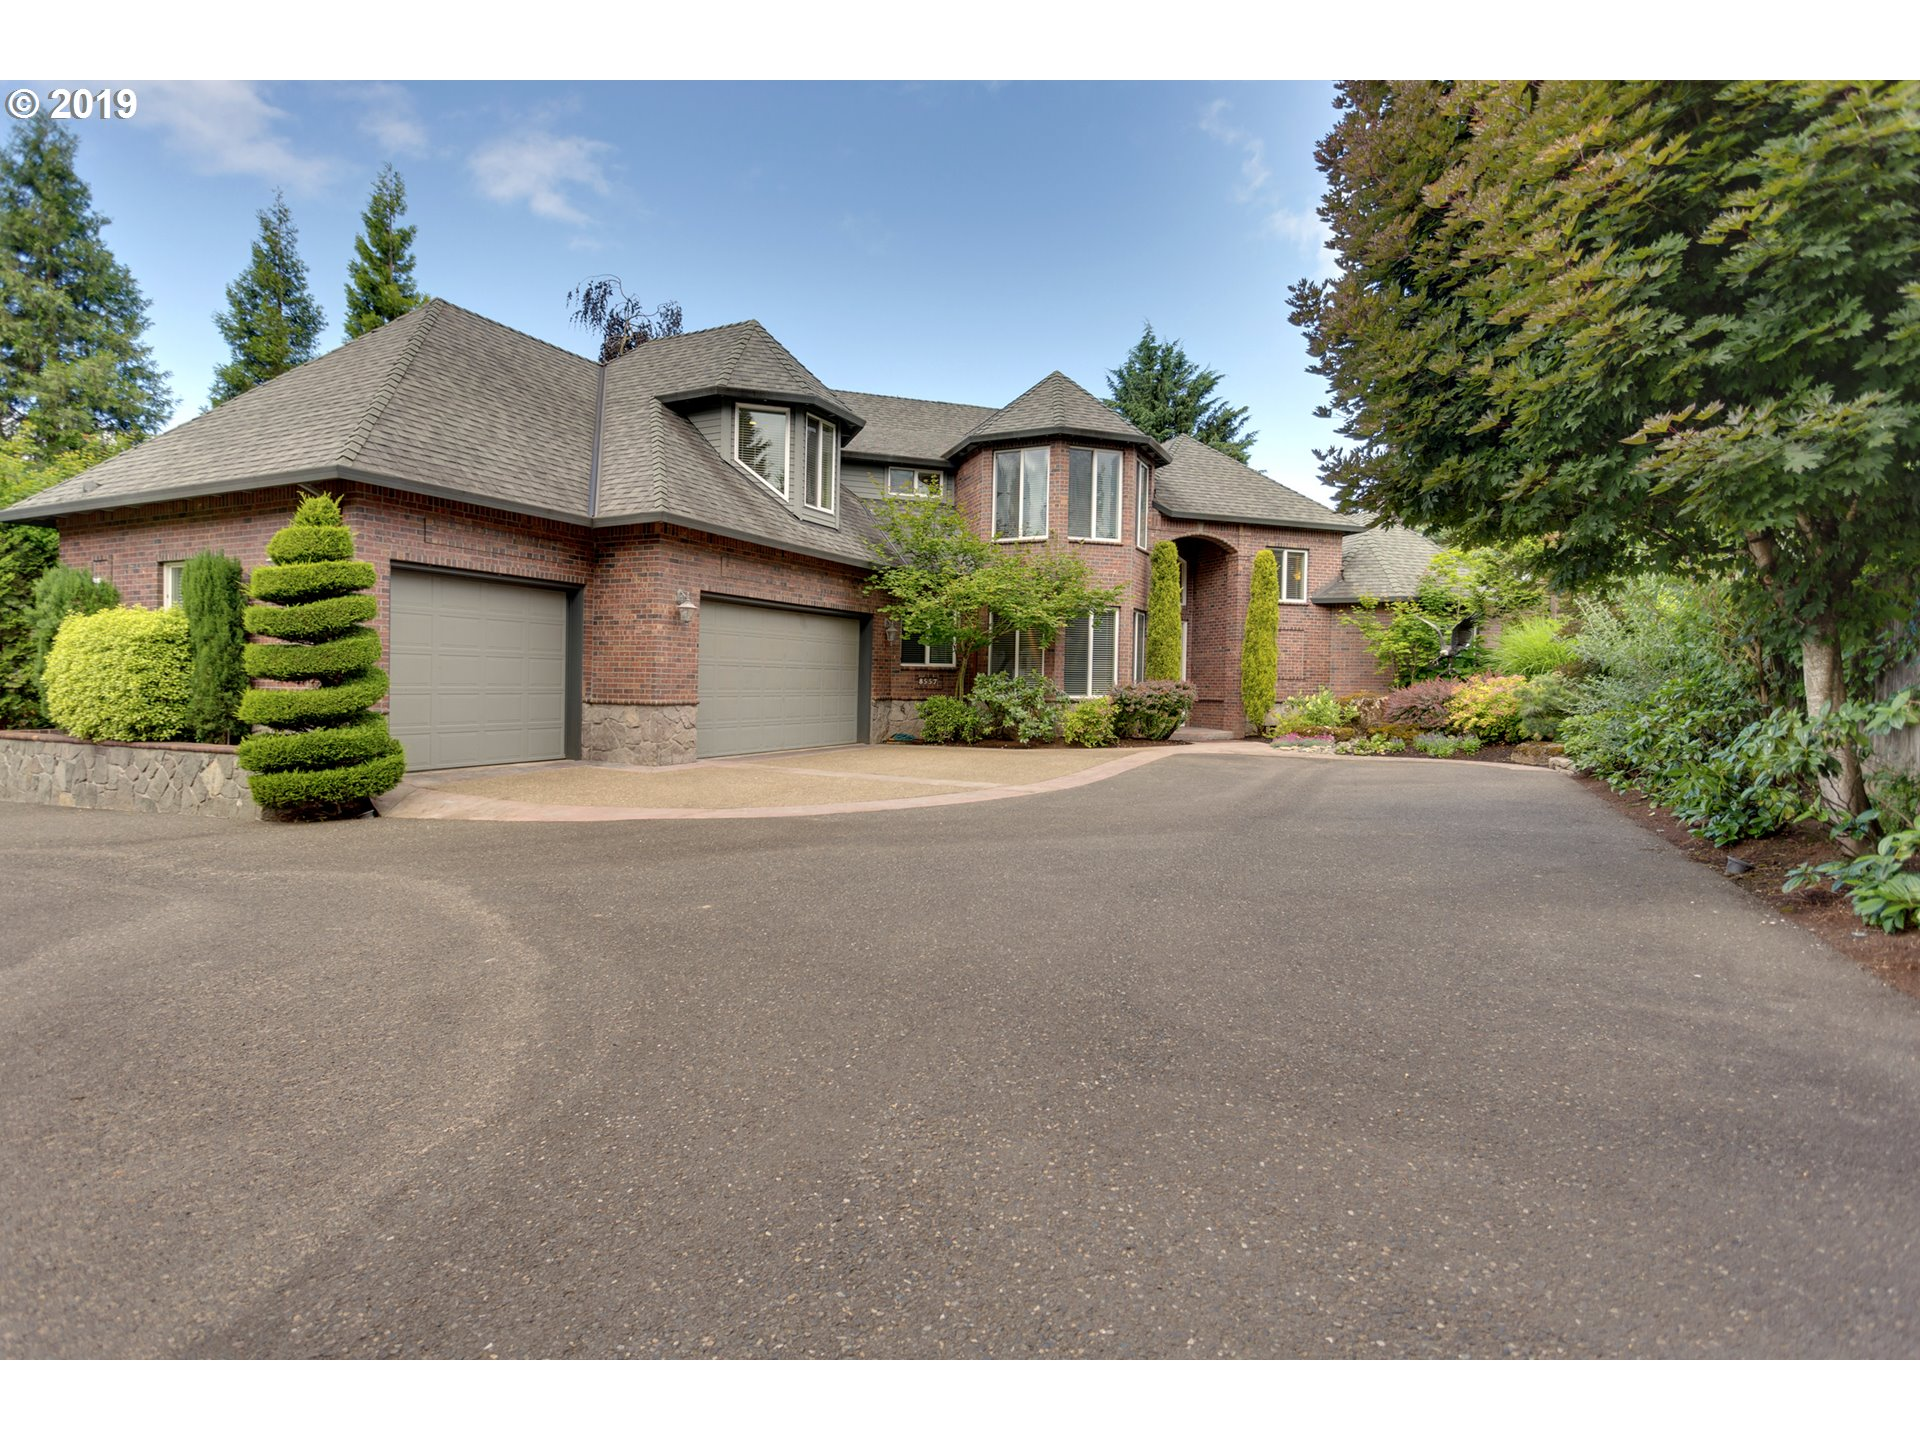 Custom built Beaverton home on 1/2 acre with adjacent 1/4 acre lot designed as a family compound ideal for entertaining & busy families. Beautiful professional landscape creates a private oasis with pool, koi pond & spa. Master on main w/ 4 bdrms upstairs, each with it/s own sink to ease hectic school mornings. Laundry rms on both floors. Close to Jesuit and OES. Easy access to Nike, Intel & hi-tech corridor.